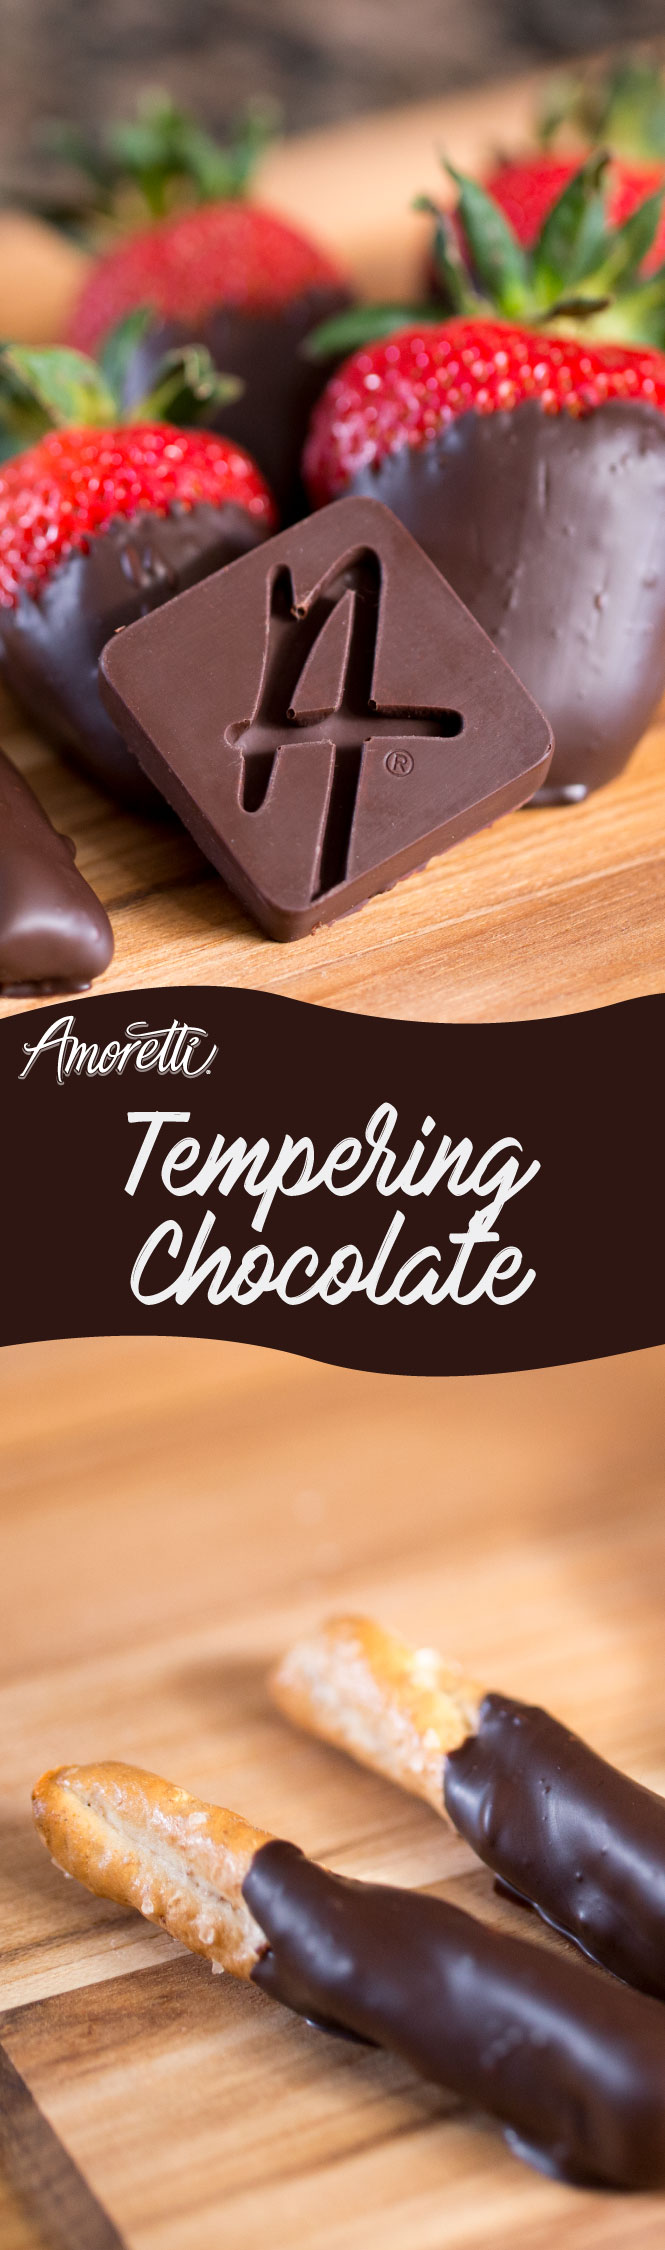 Learn to temper chocolate like a professional!